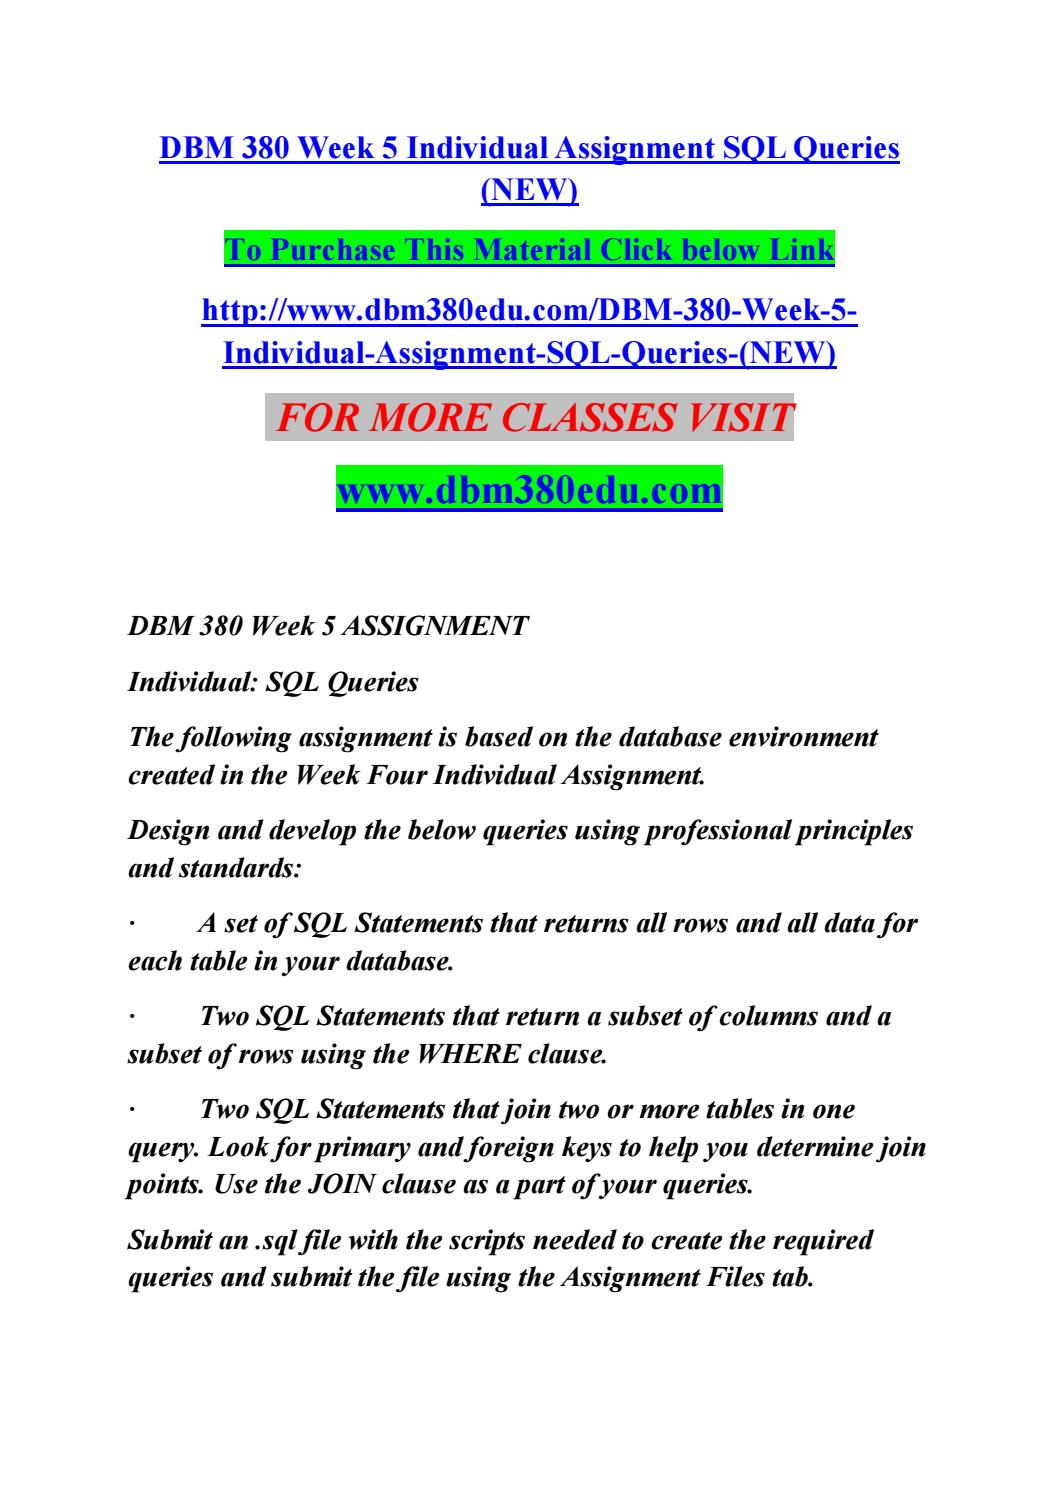 dbm 380 week 5 individual assignment sql queries new by singht dbm 380 week 5 individual assignment sql queries new by singht rock